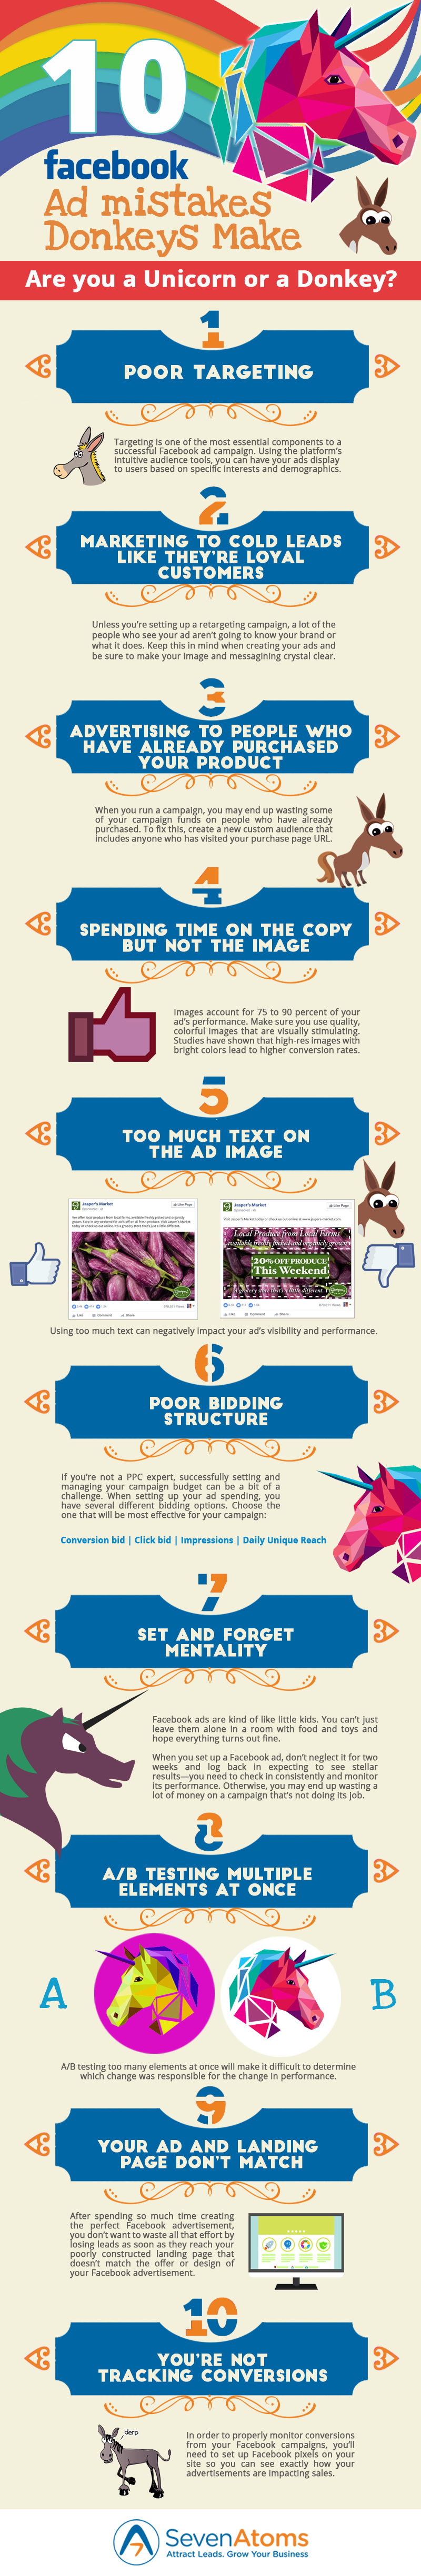 10 Facebook Ad Mistakes That Donkeys Make [INFOGRAPHIC]